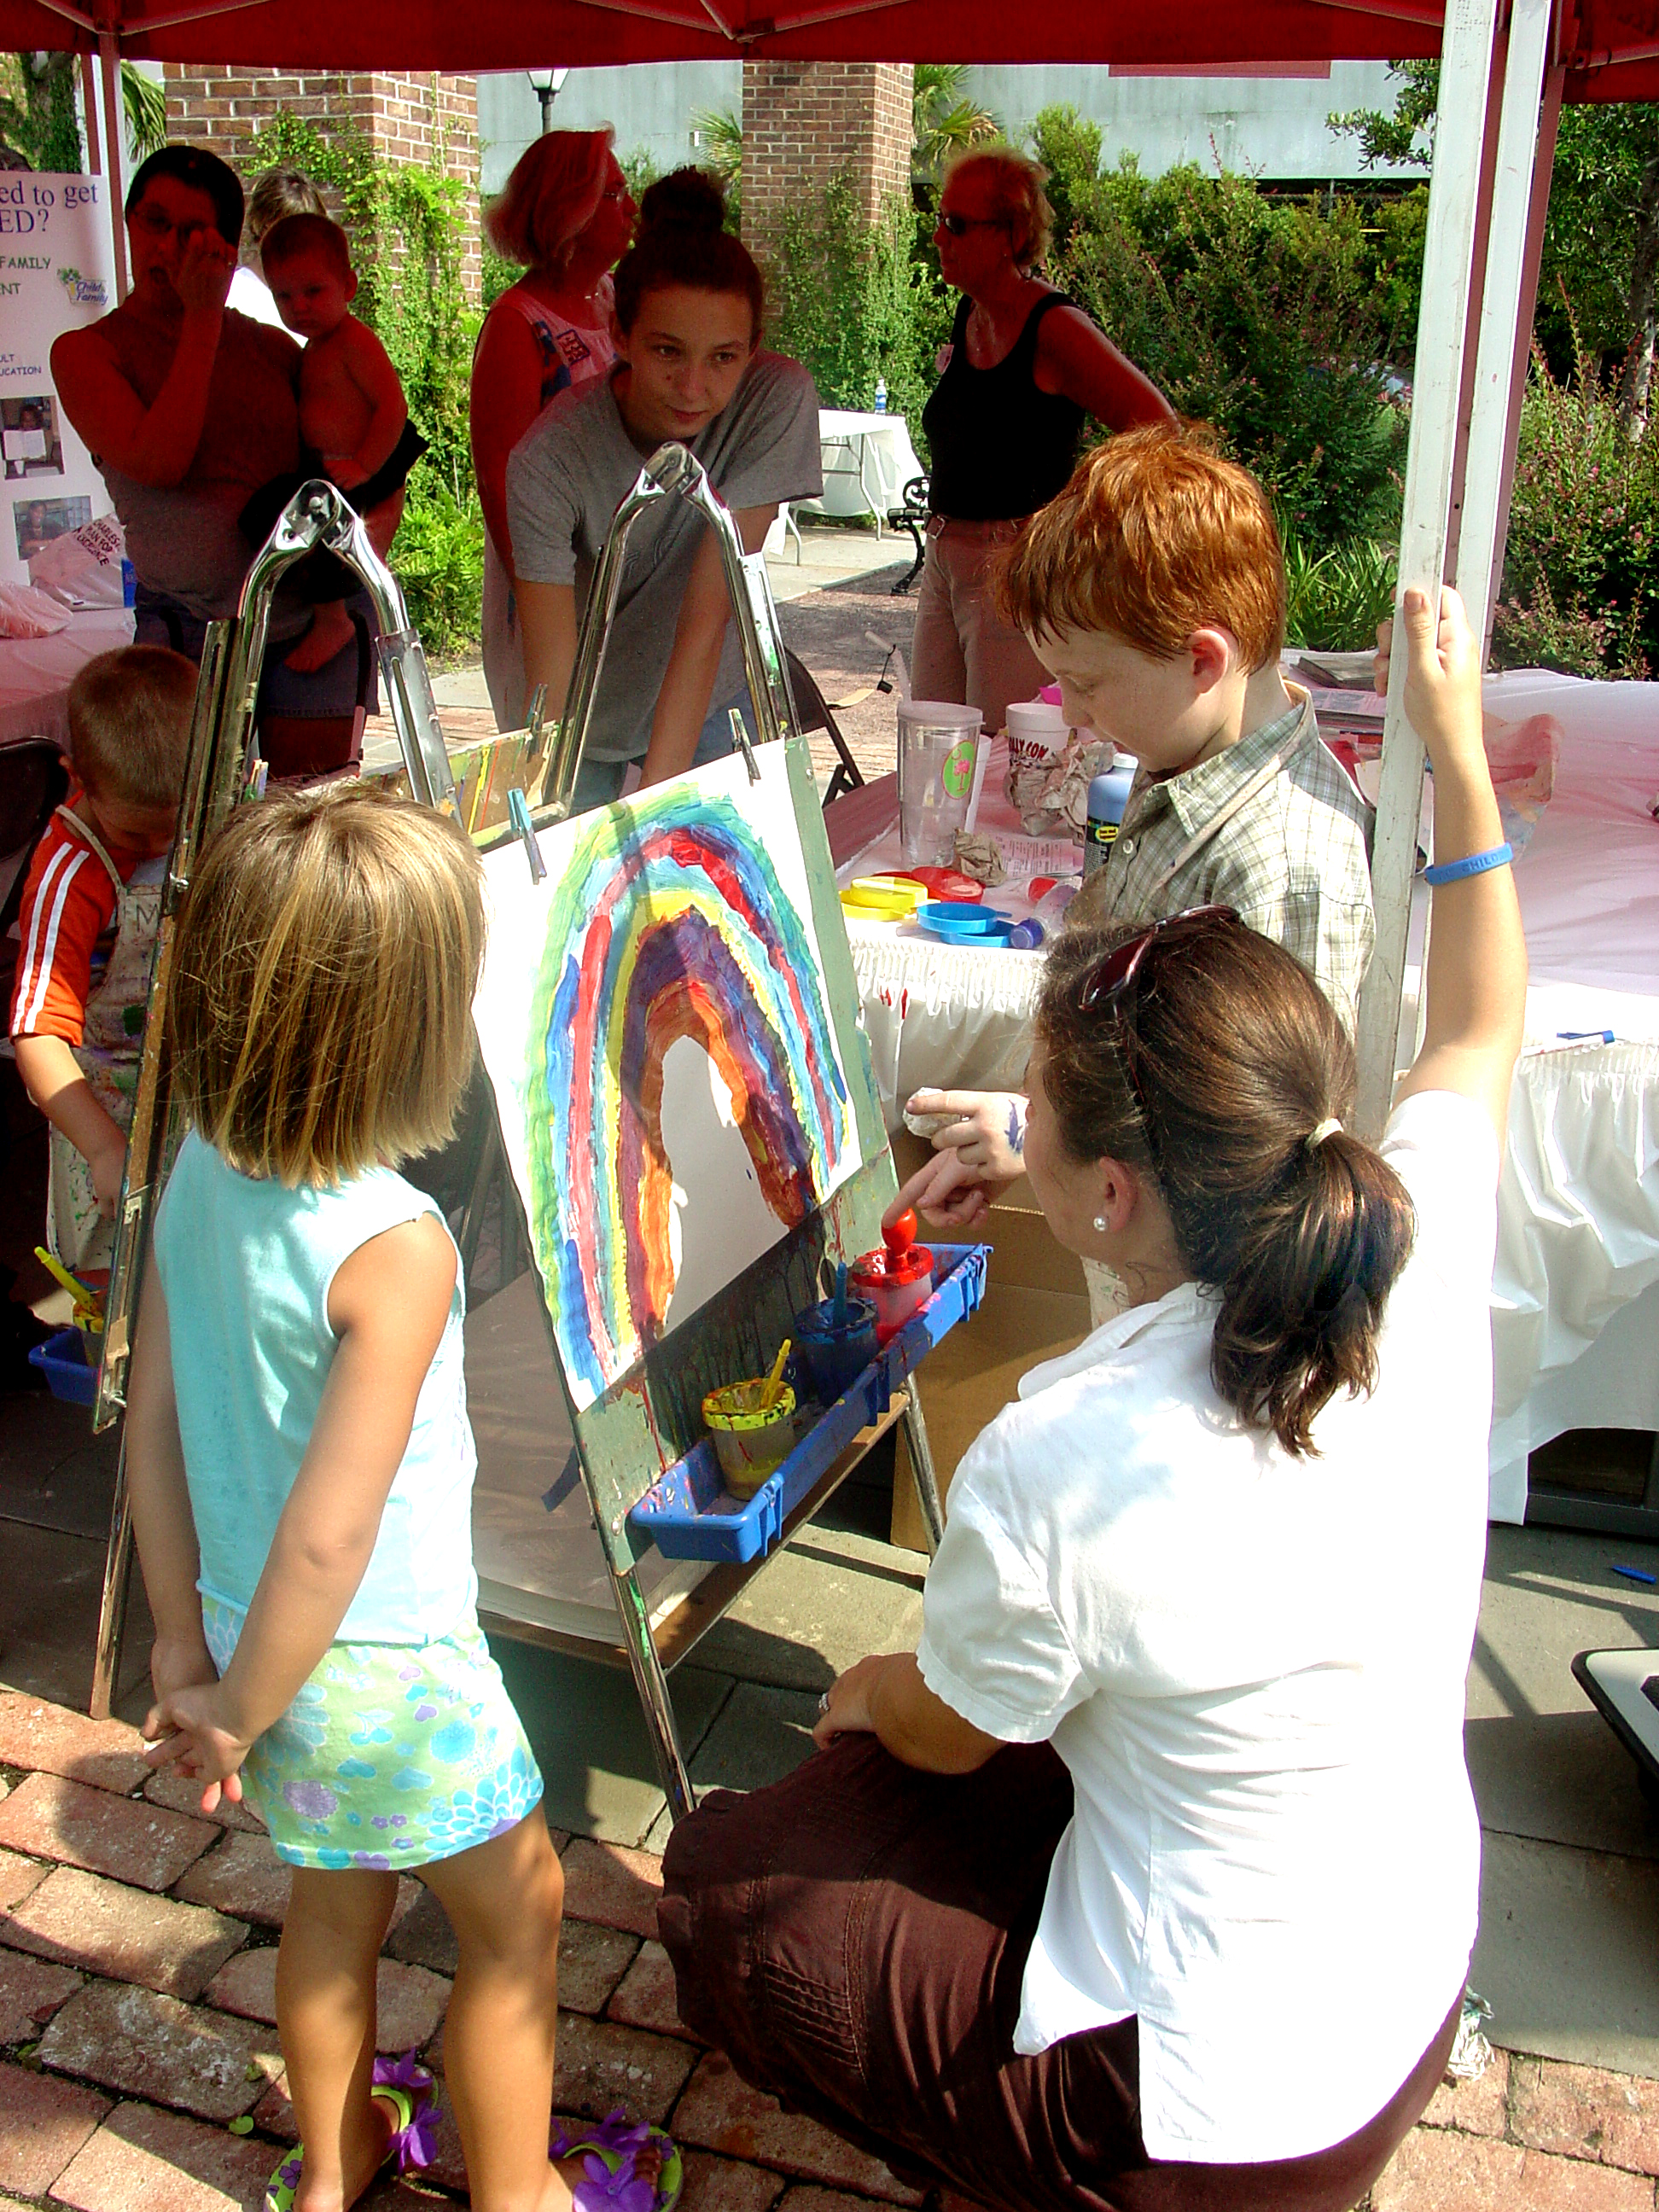 Woman helps children paint a picture of a rainbow at outdoor event